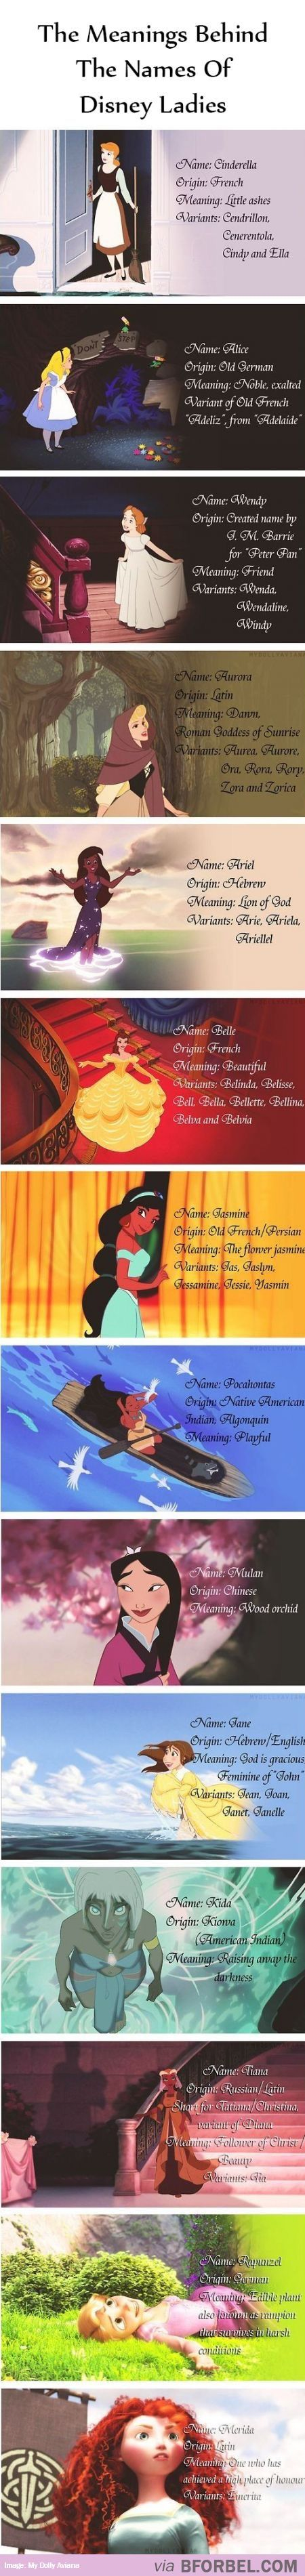 Meanings of the Cindy princess names